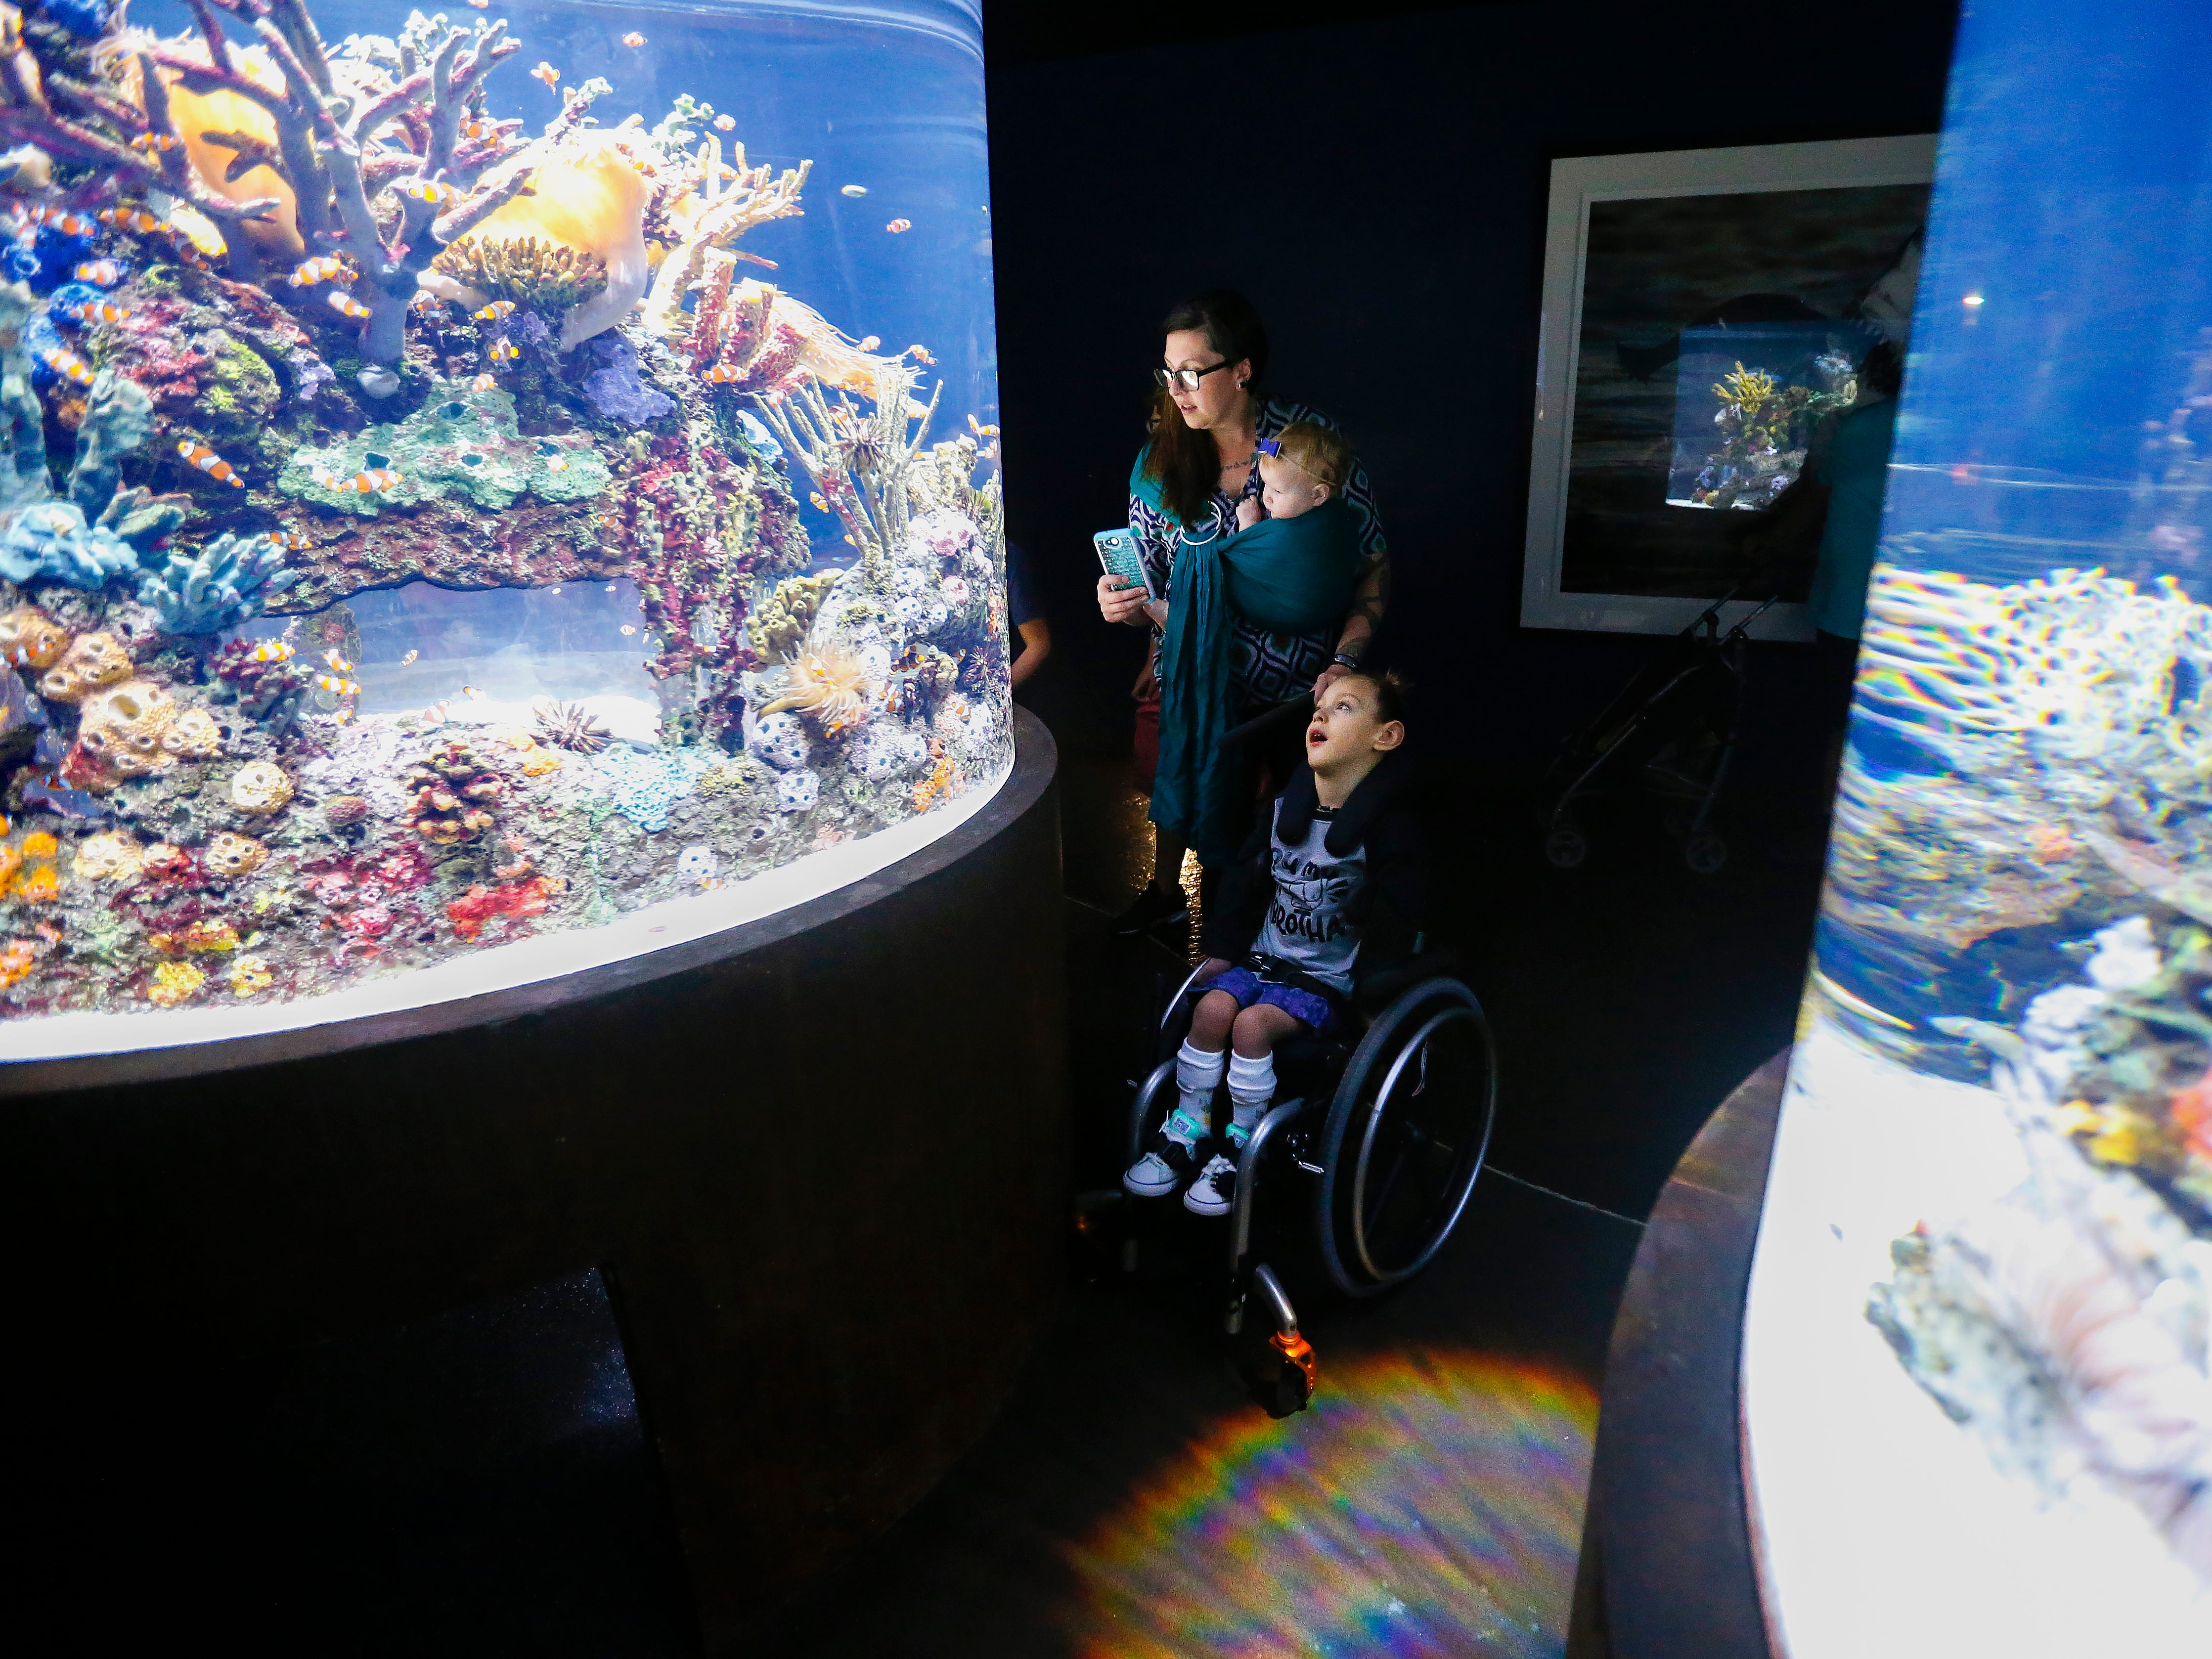 Ayden Markum, 5, looks at the clown fish at the Wonder's of Wildlife Aquarium along with his mom Ashley Markum and sister Letty Markum, 7-months, on Wednesday, Aug. 22, 2018.